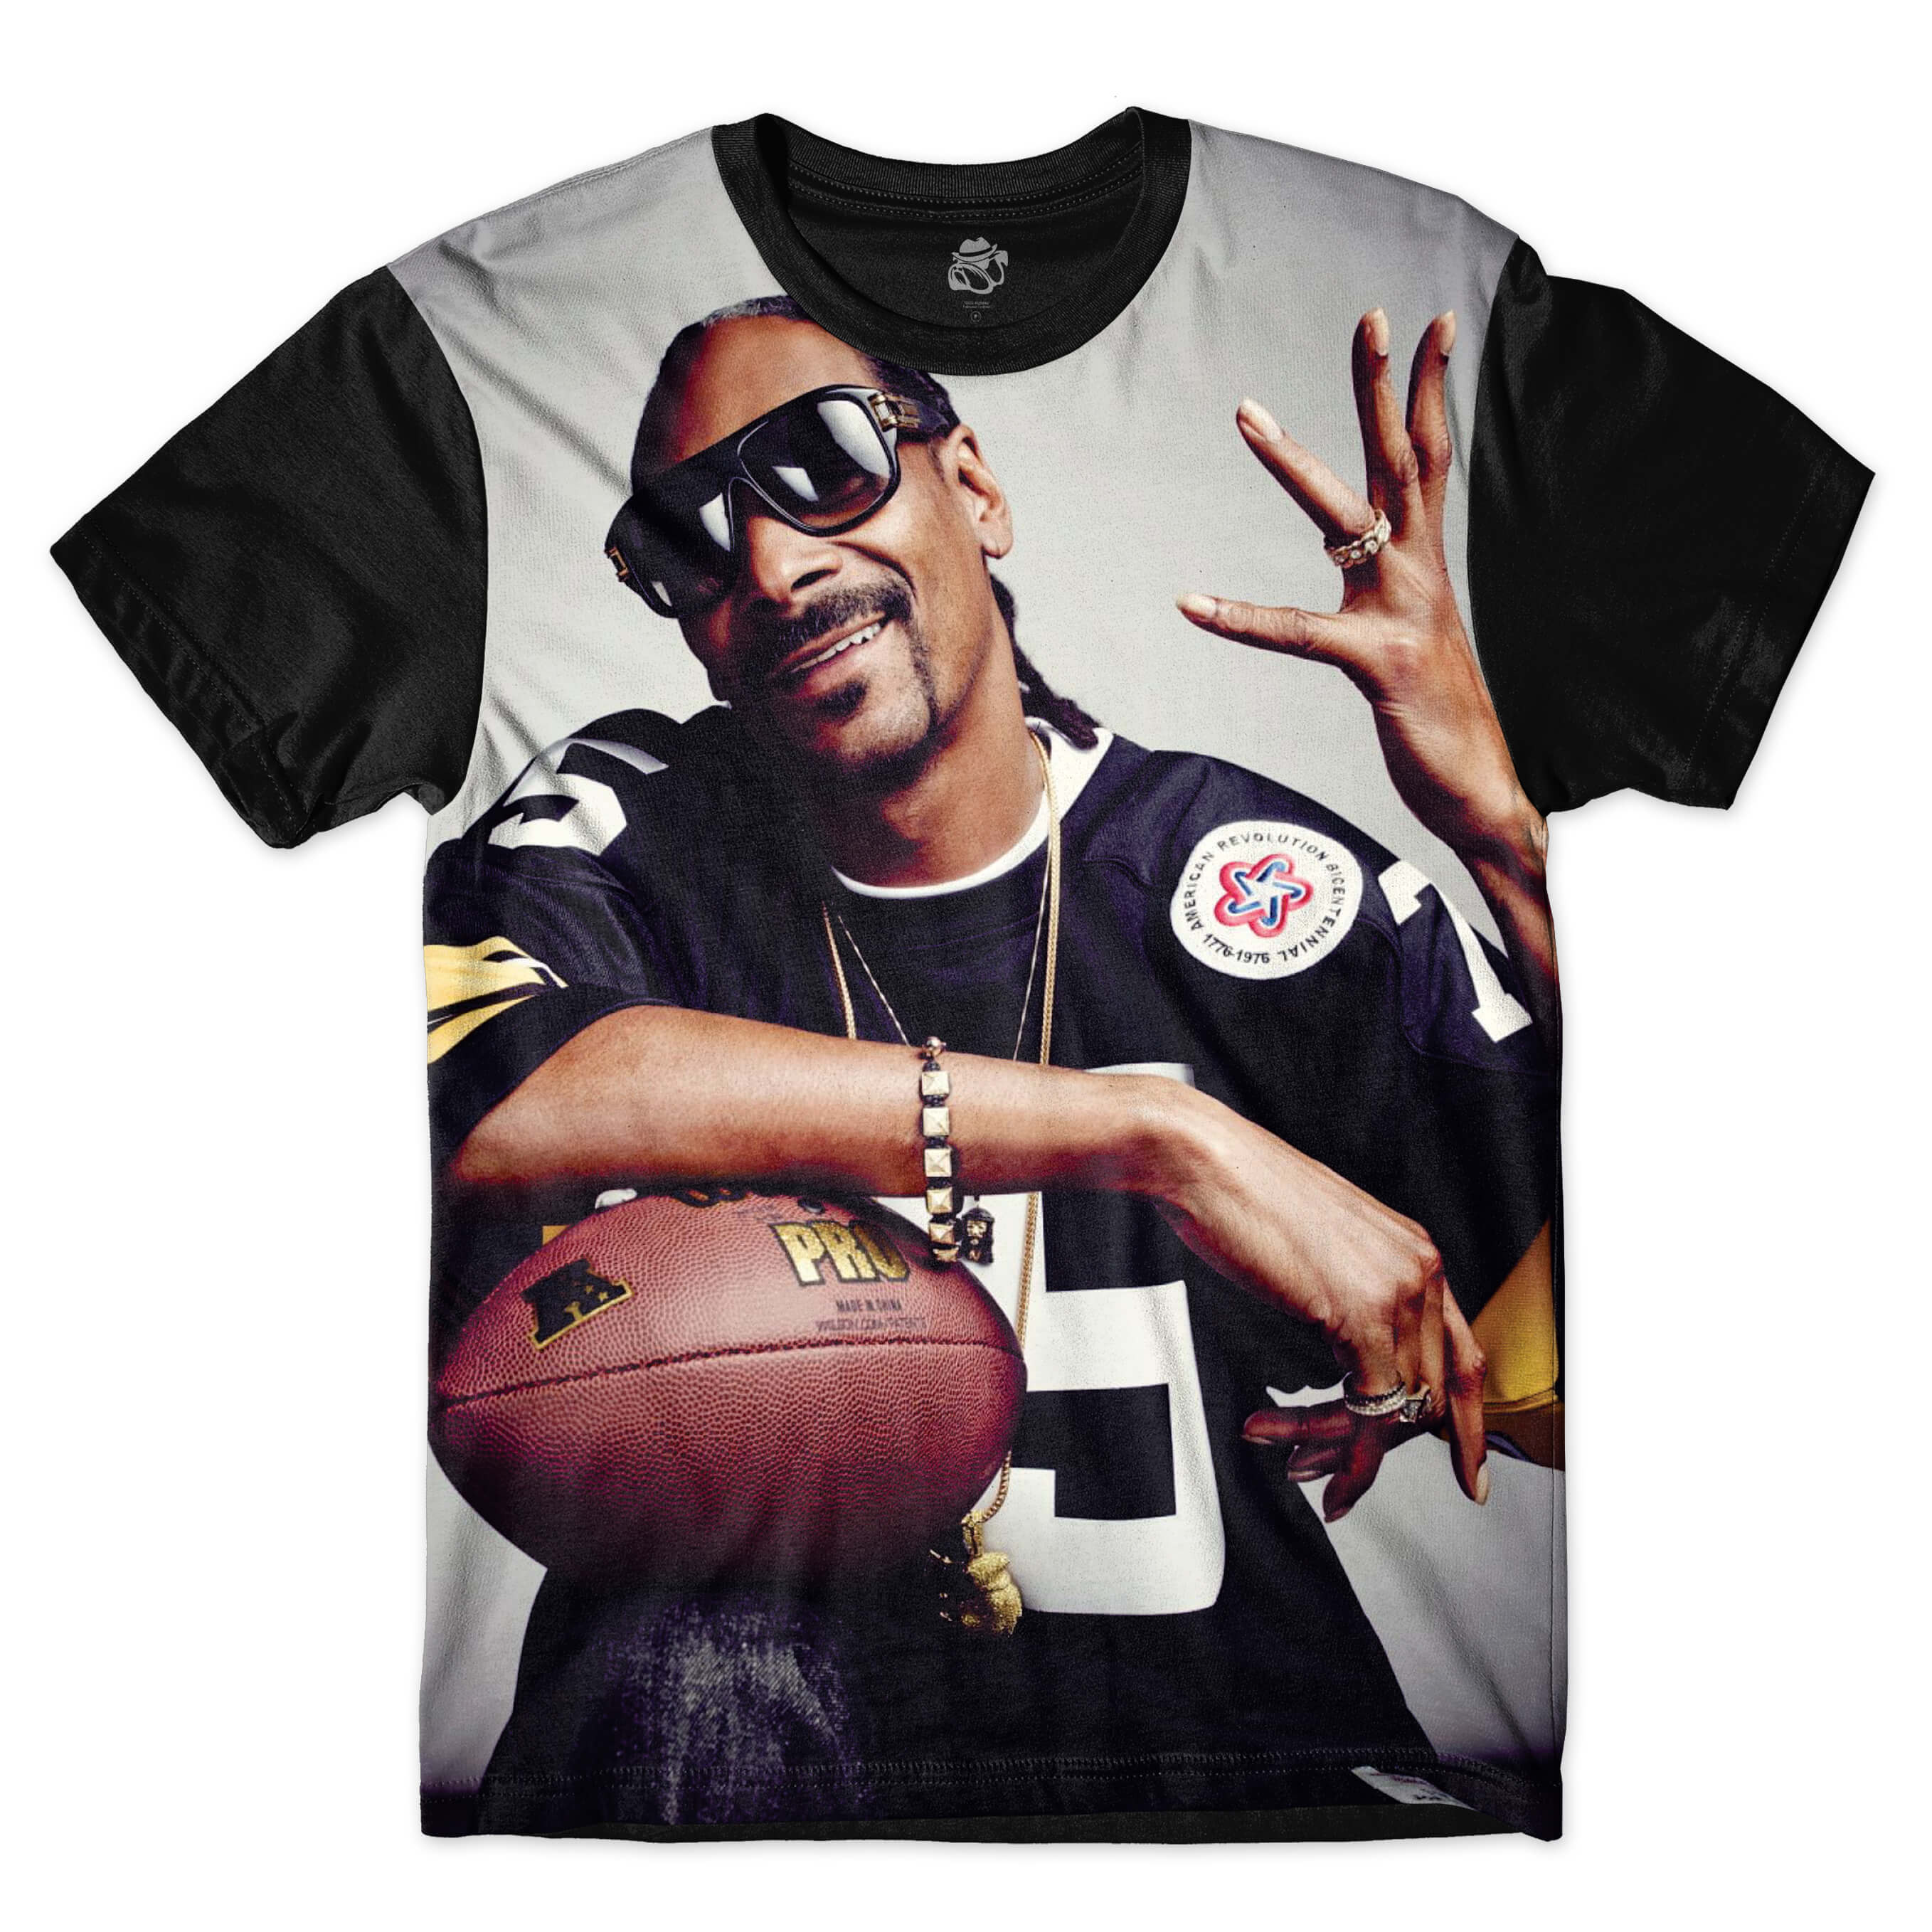 Camiseta BSC Snoop Dogg Full Print Preto